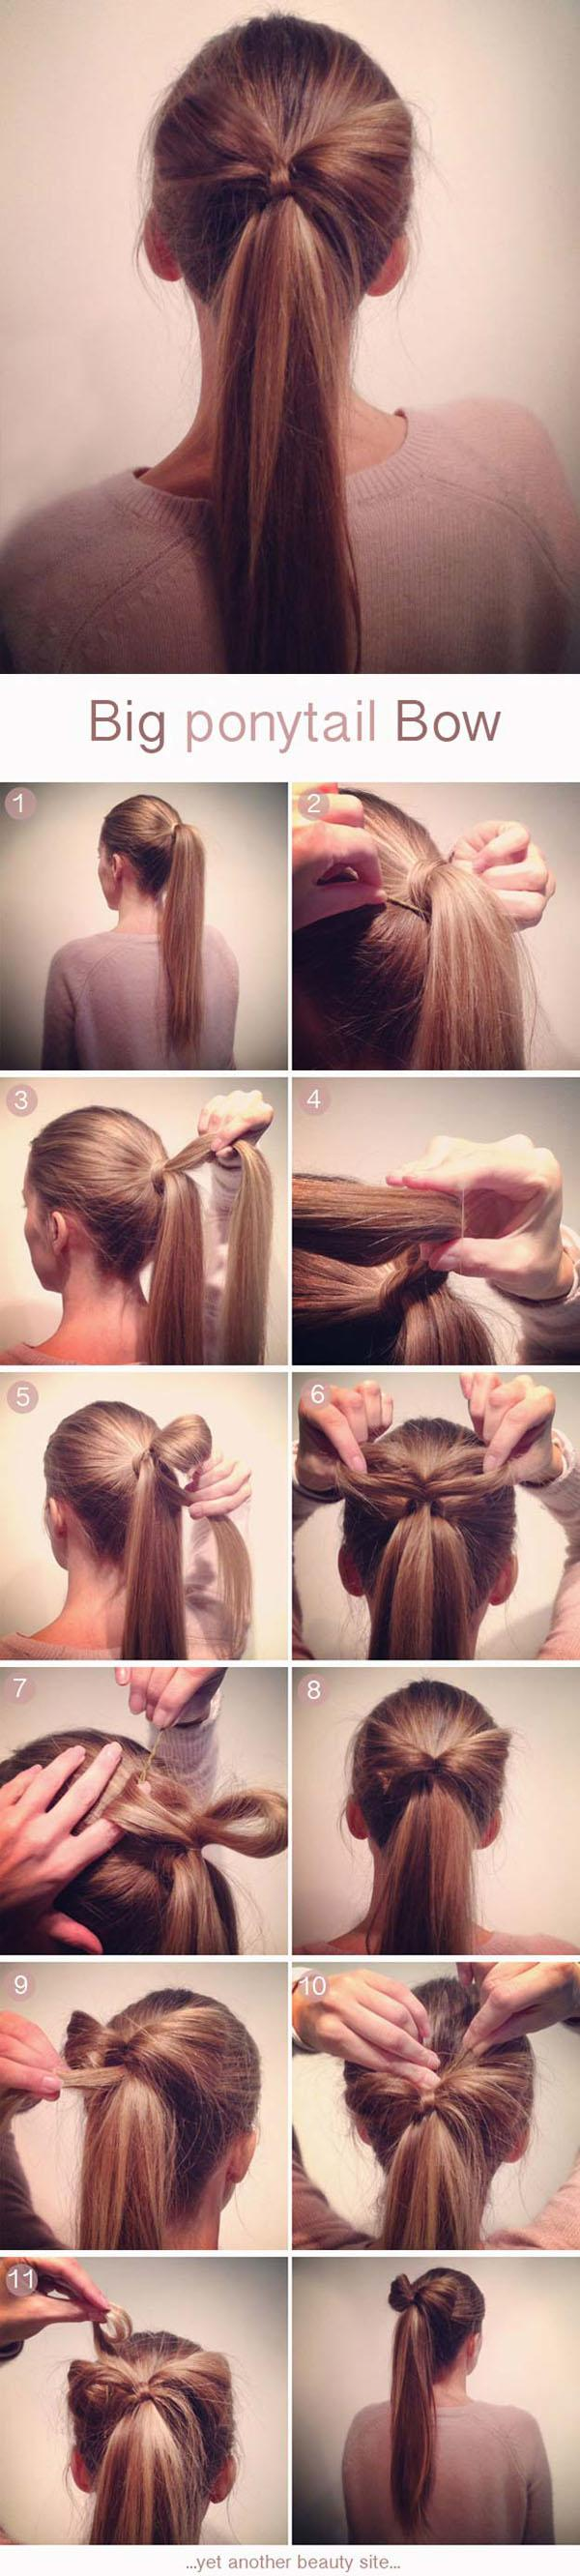 13 Quick And Easy Hairstyle For Busy Women